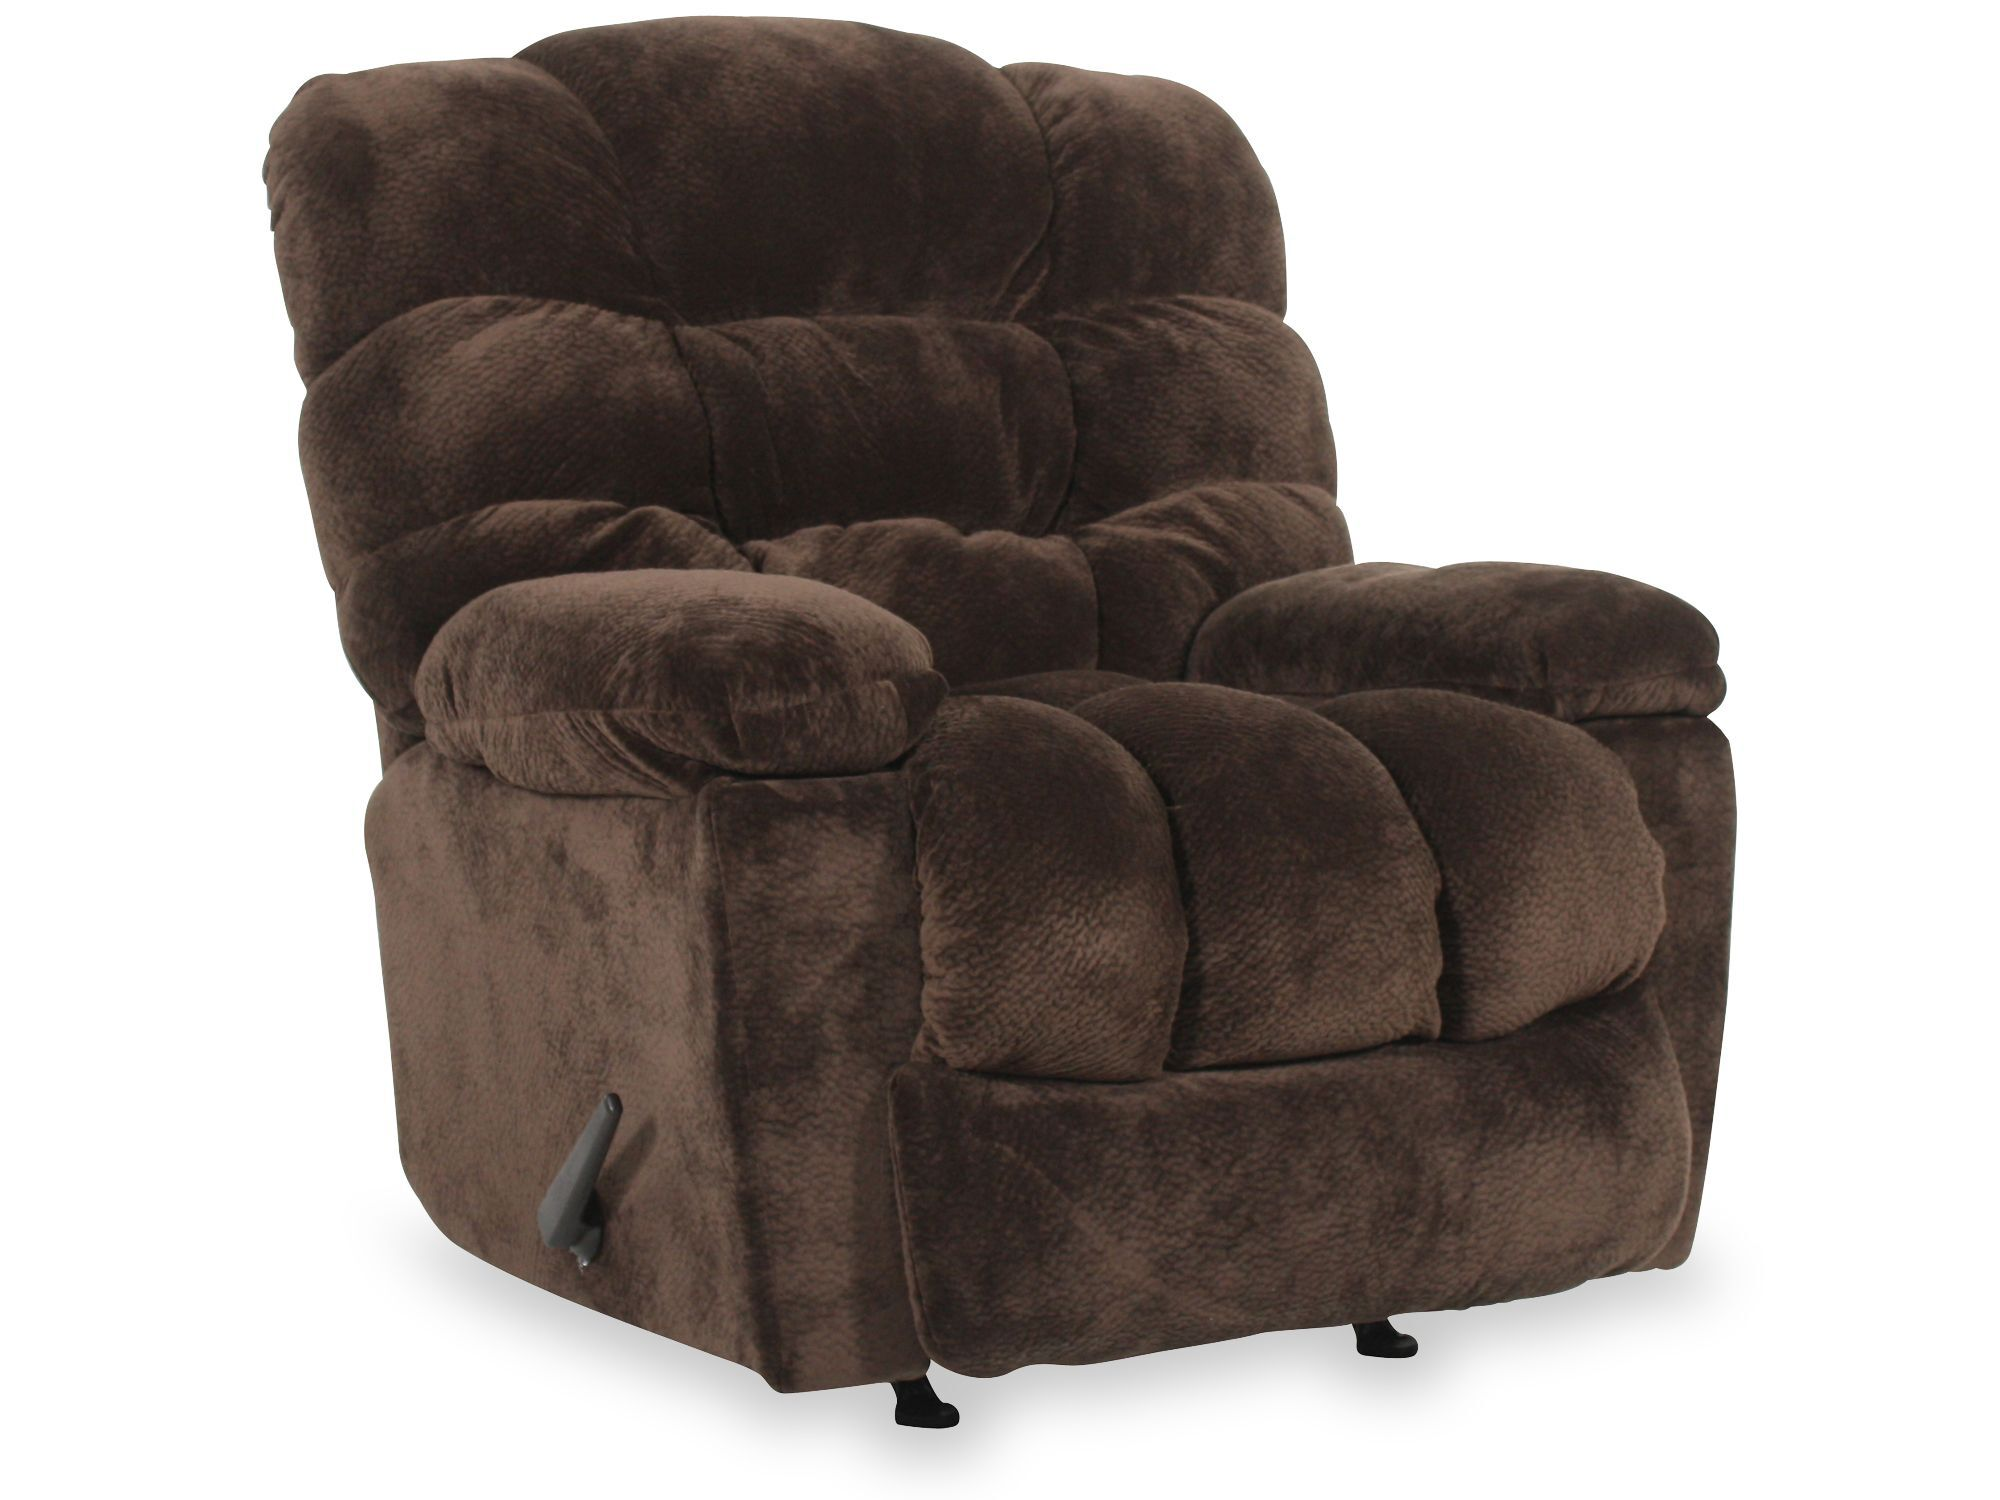 Merveilleux ... Casual 43u0026quot; Wall Saver Recliner With Storage Arm In Chocolate ...